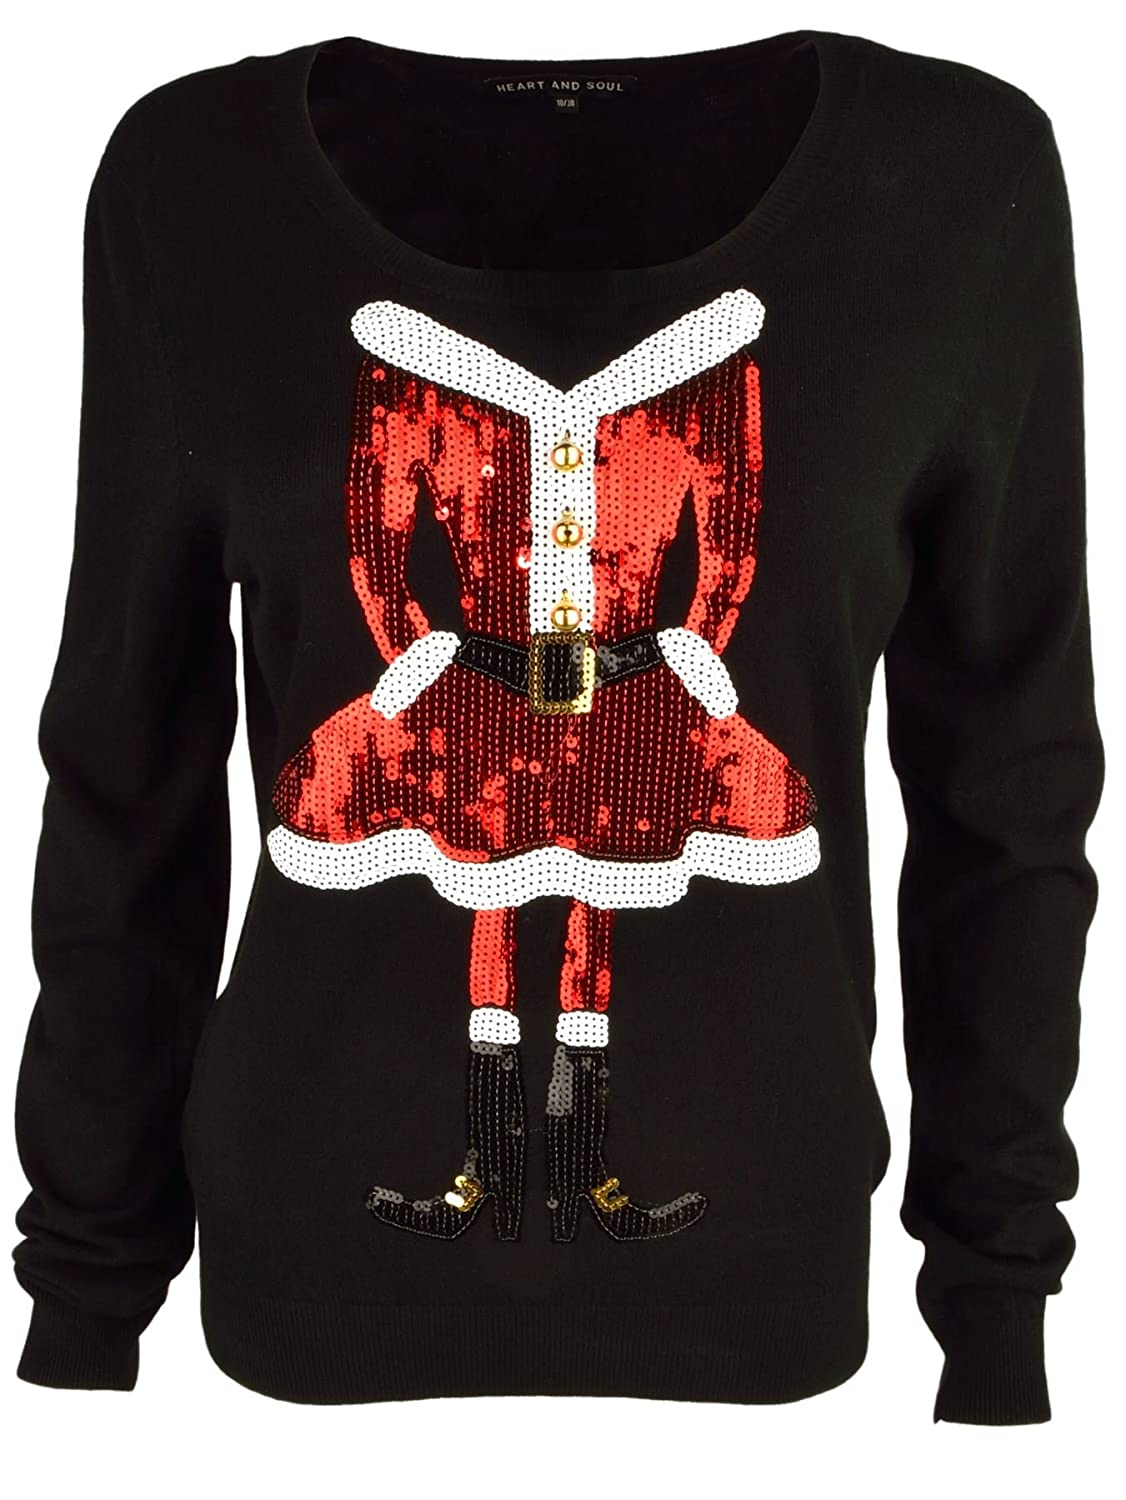 cc2649babc9 Heart & Soul Women's 'Miss Claus' Funny Sequin Motif Knitted Christmas  Jumper Top